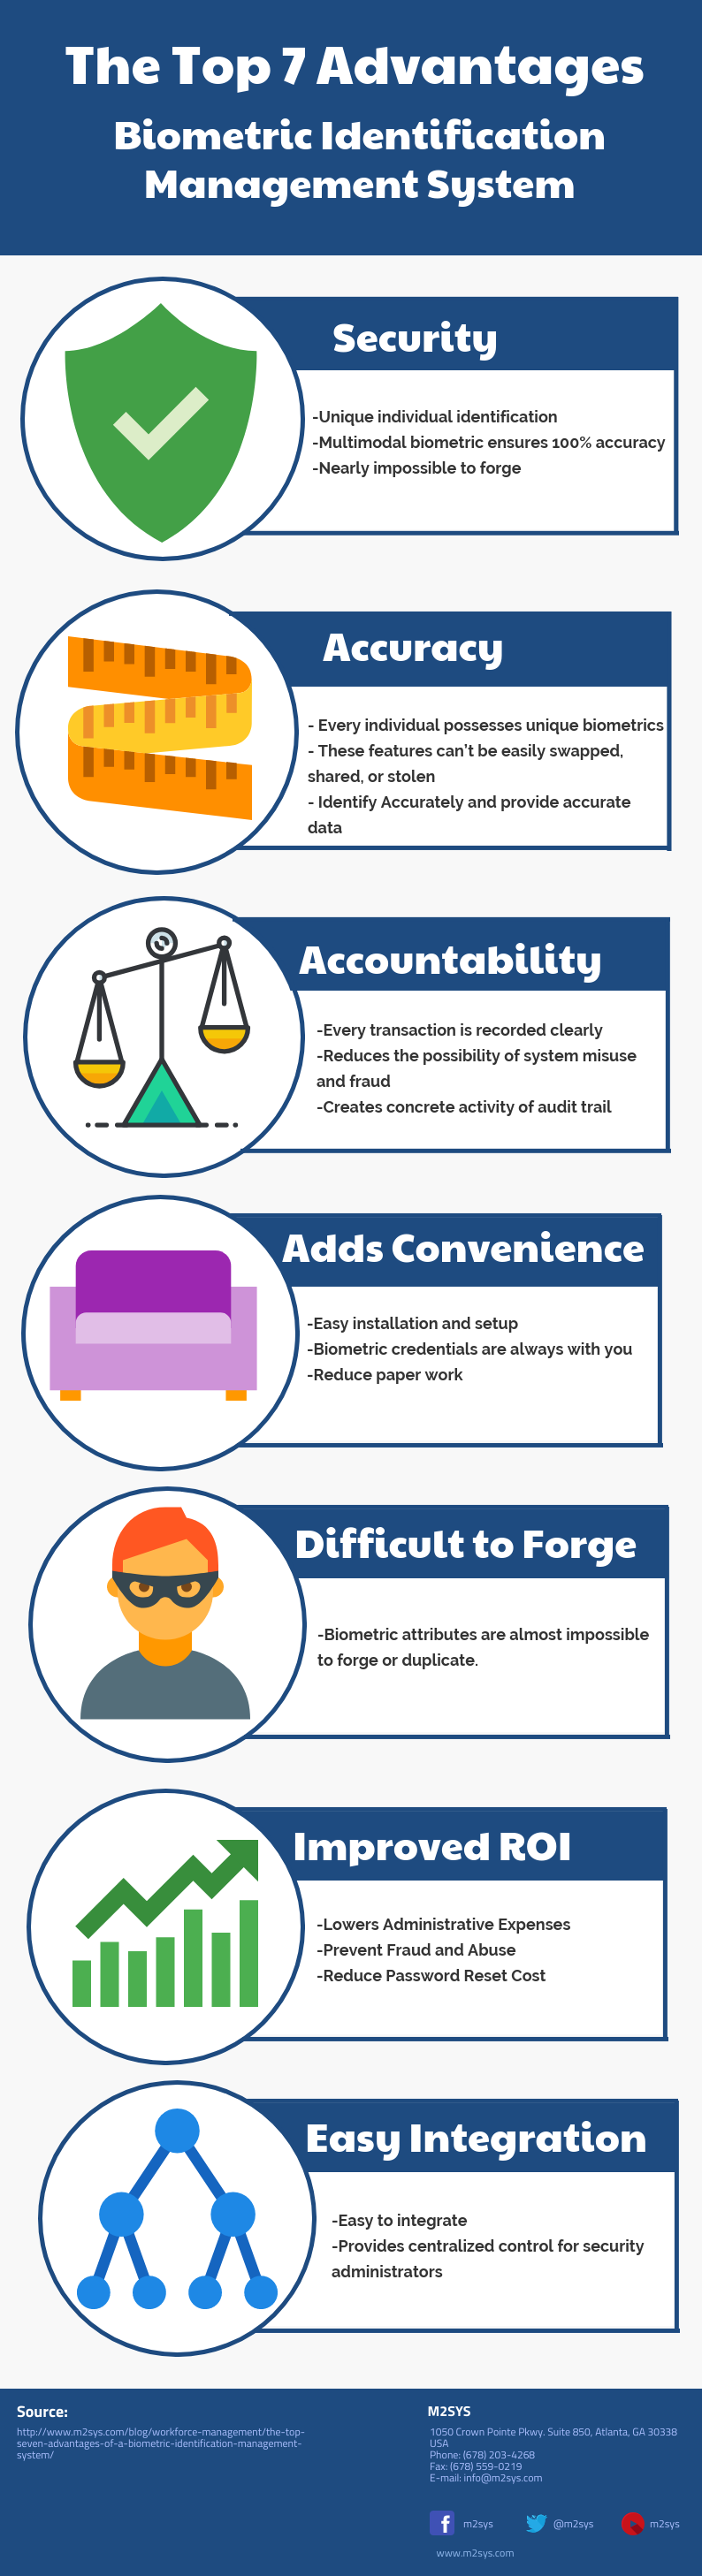 Infographics: 7 Advantages of a Biometric Identification Management System (2)